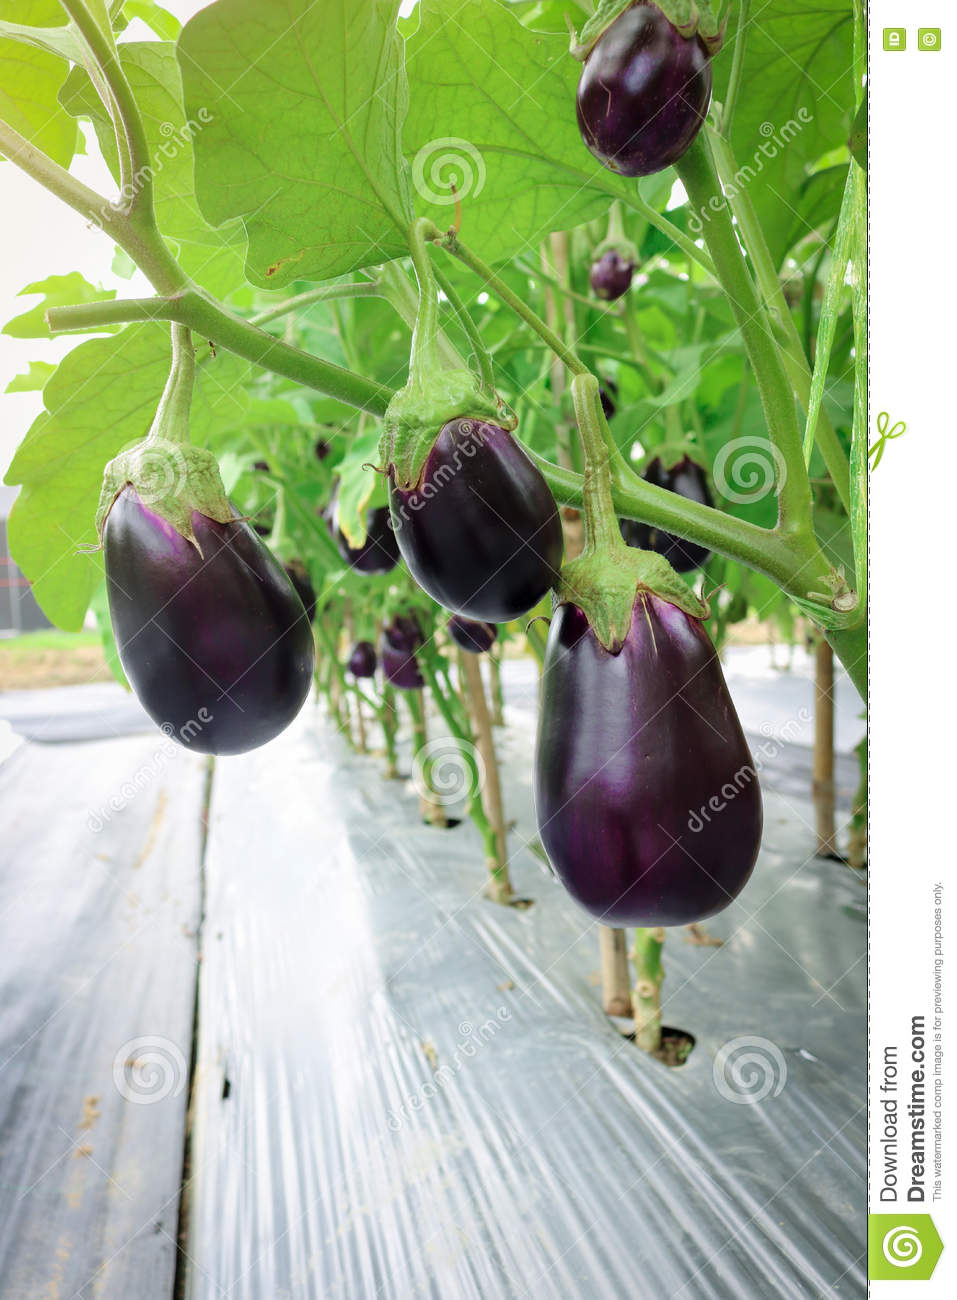 how to tell when eggplant is ready to harvest